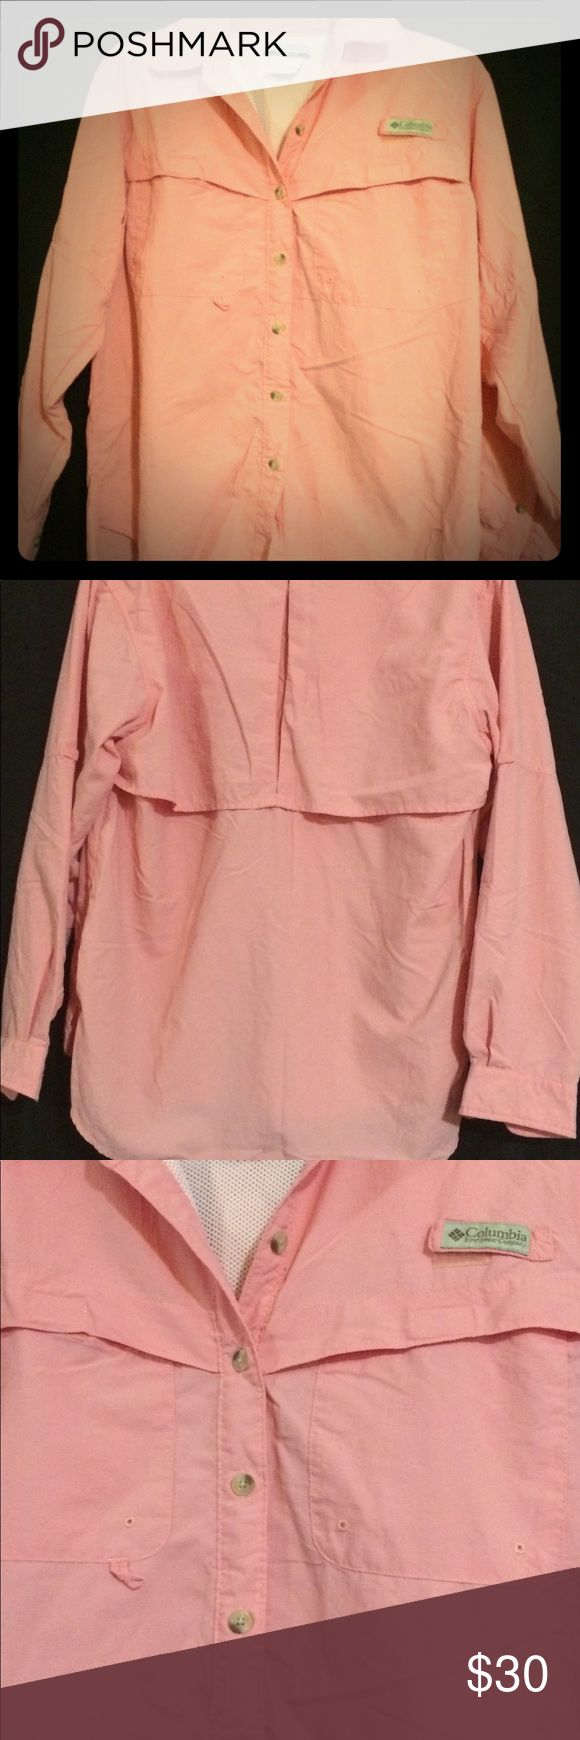 Columbia Women's PFG shirt Women's Columbia Peach PFG shirt Columbia Tops Button Down Shirts